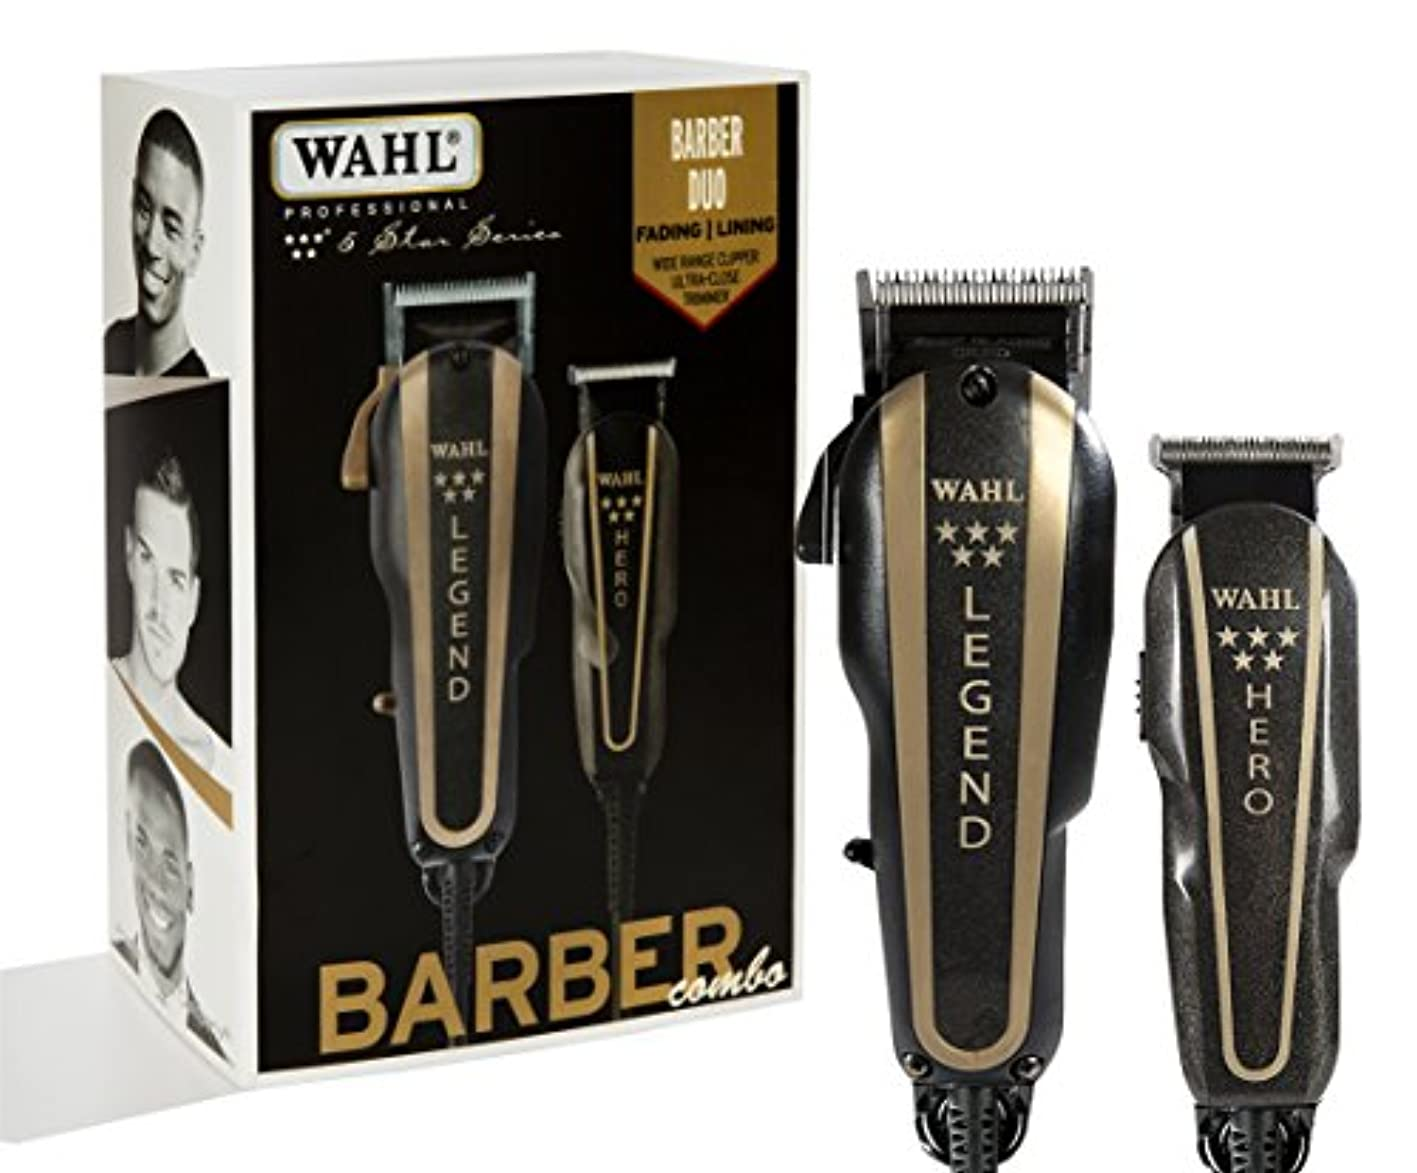 ライブ王朝誇大妄想WAHL Professional 5 Star Series Barber Combo No. 8180